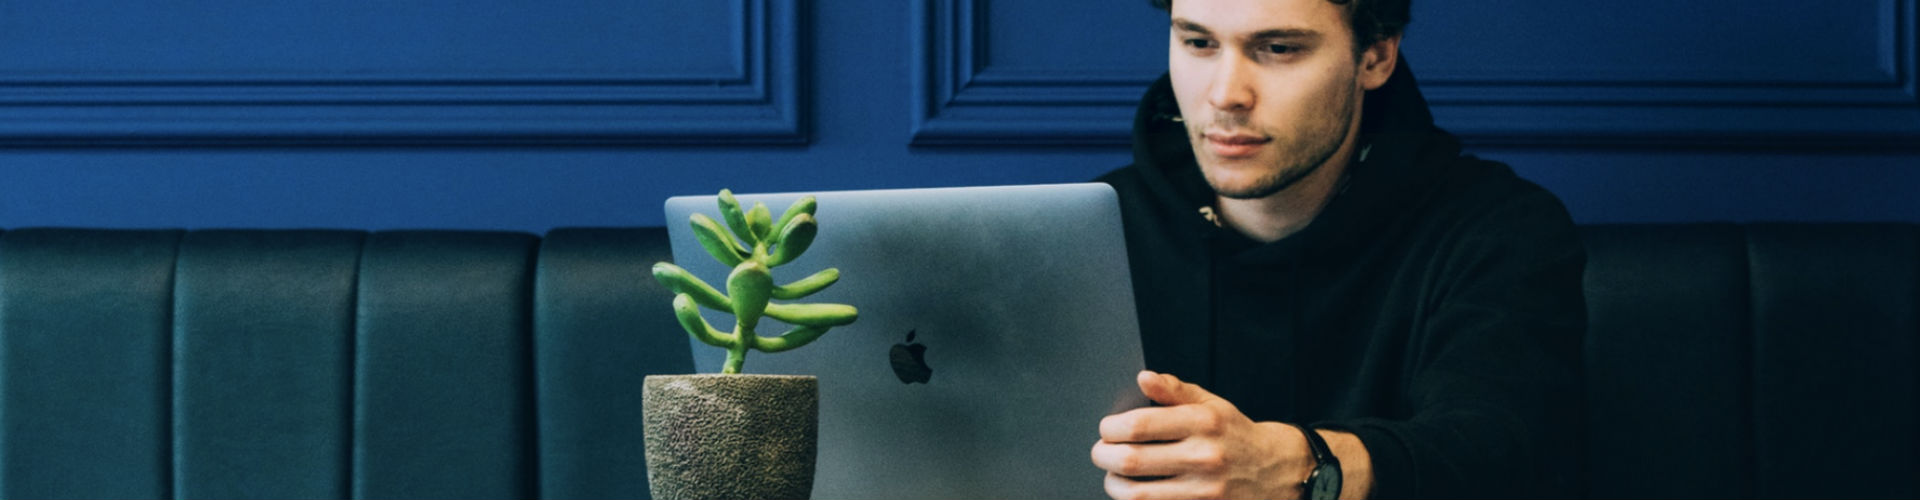 Is working remotely easier than going to an office?